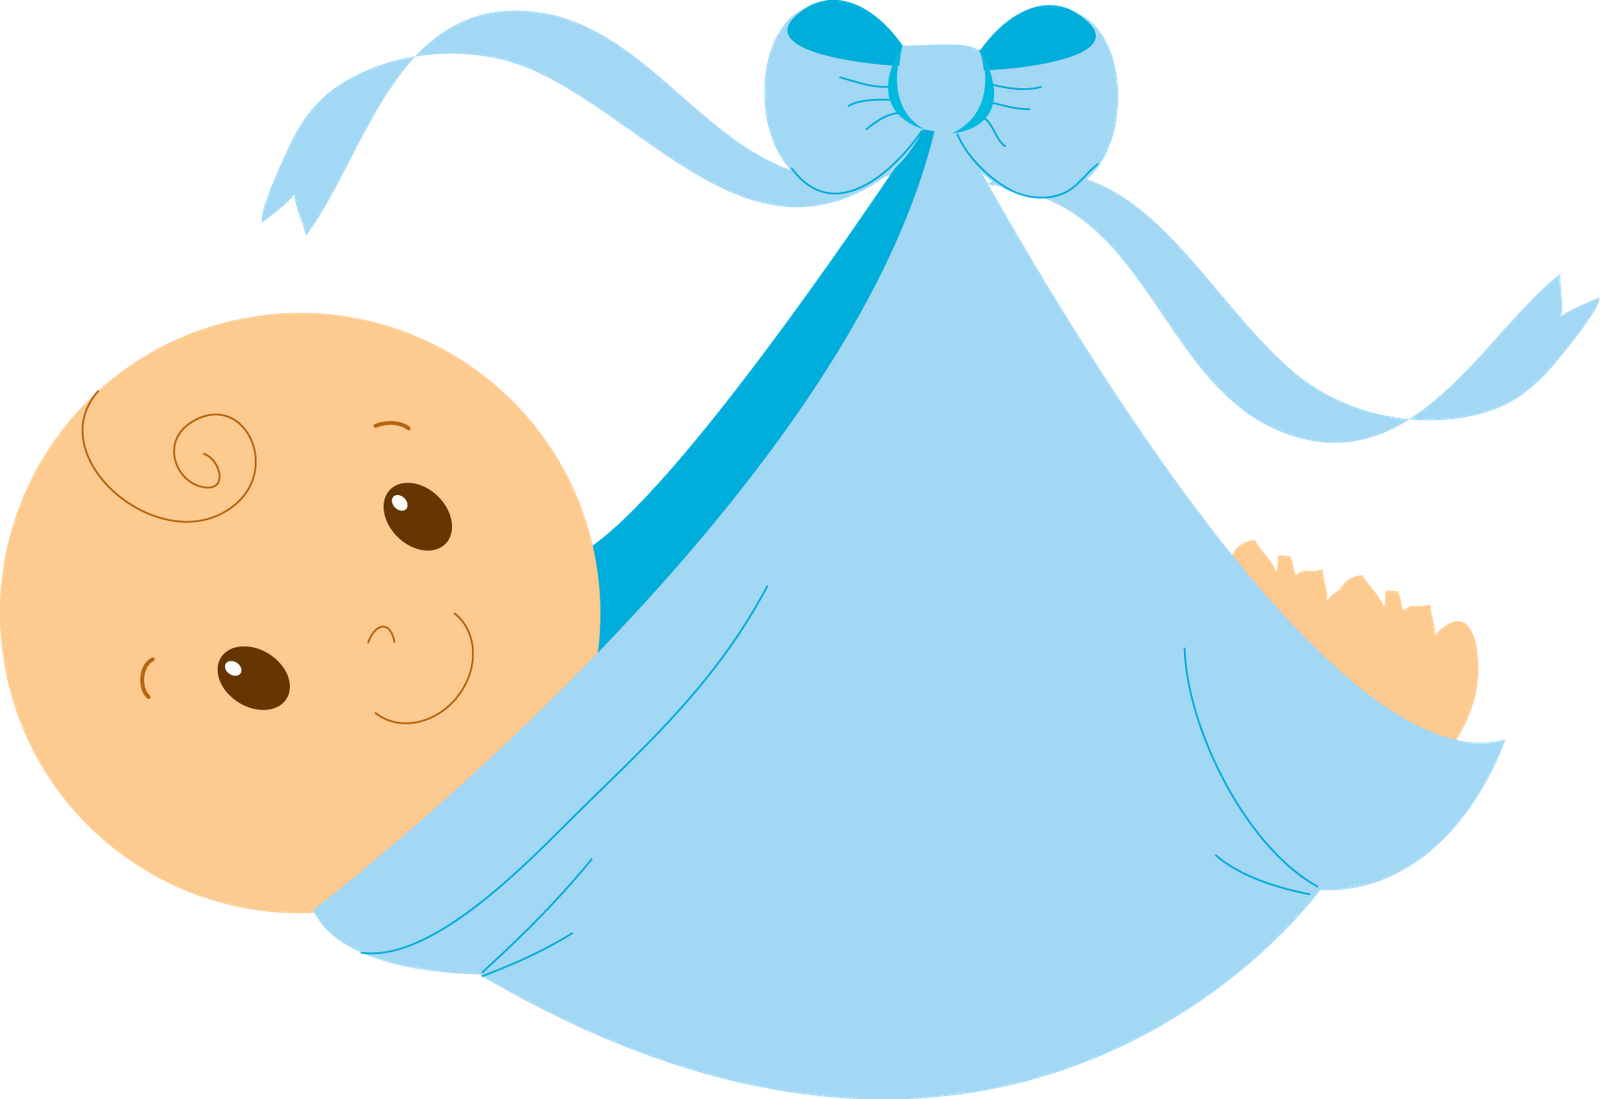 Baby Boy Clip Art Baby Shower Clipart Pa-Baby Boy Clip Art Baby Shower Clipart Panda Free Clipart Images-0